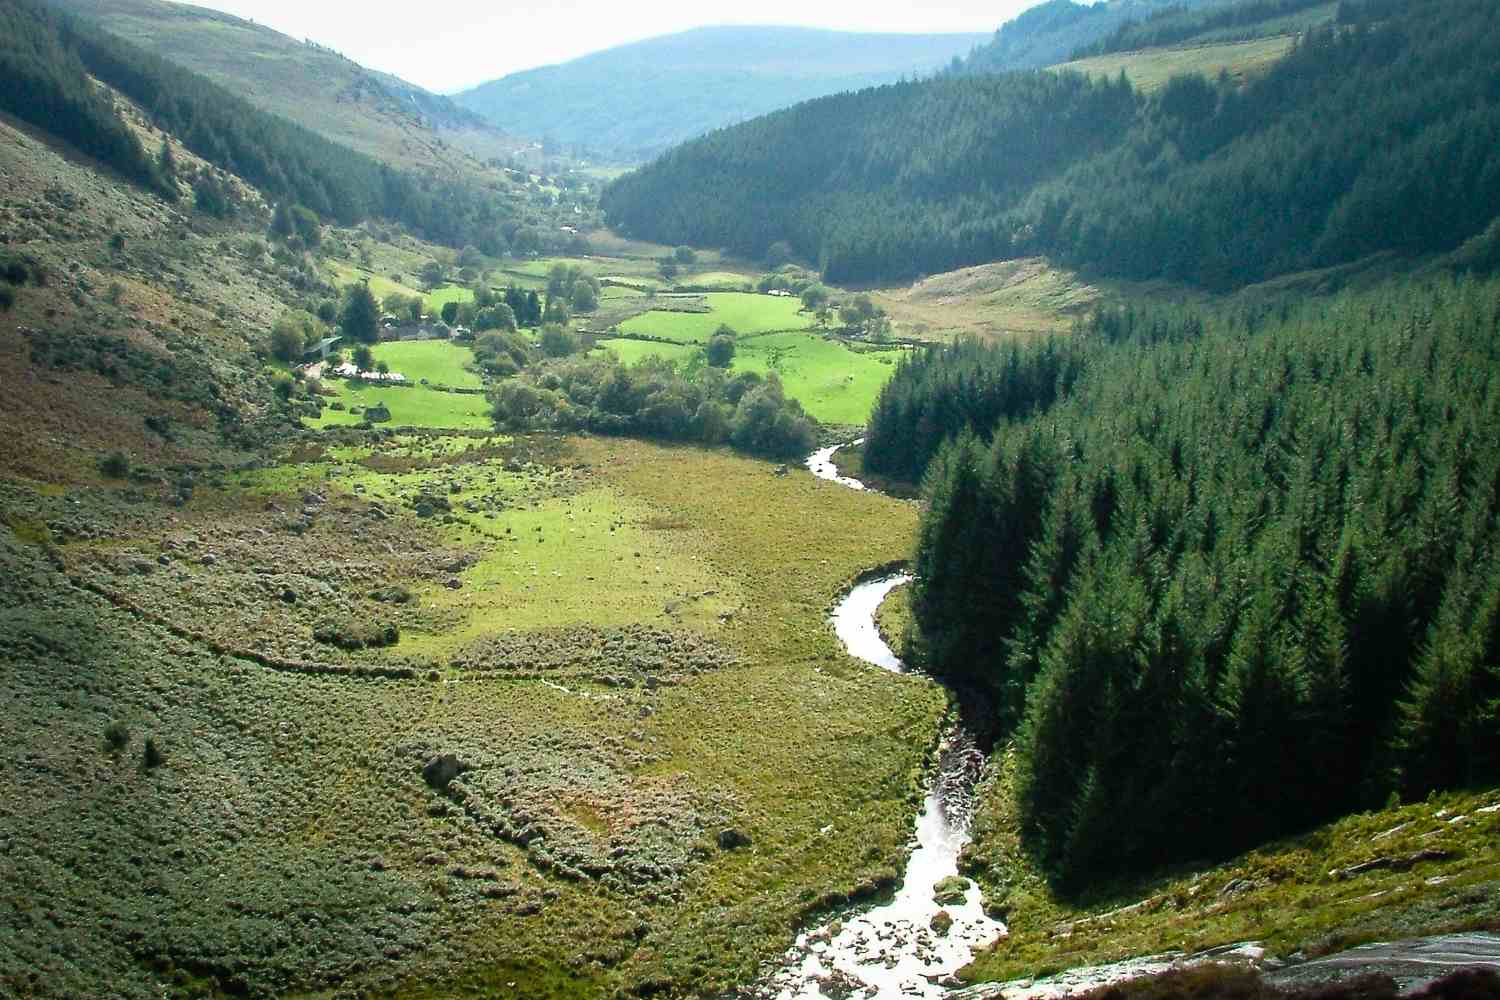 Following the stream down to Glendalough on the Wicklow Way